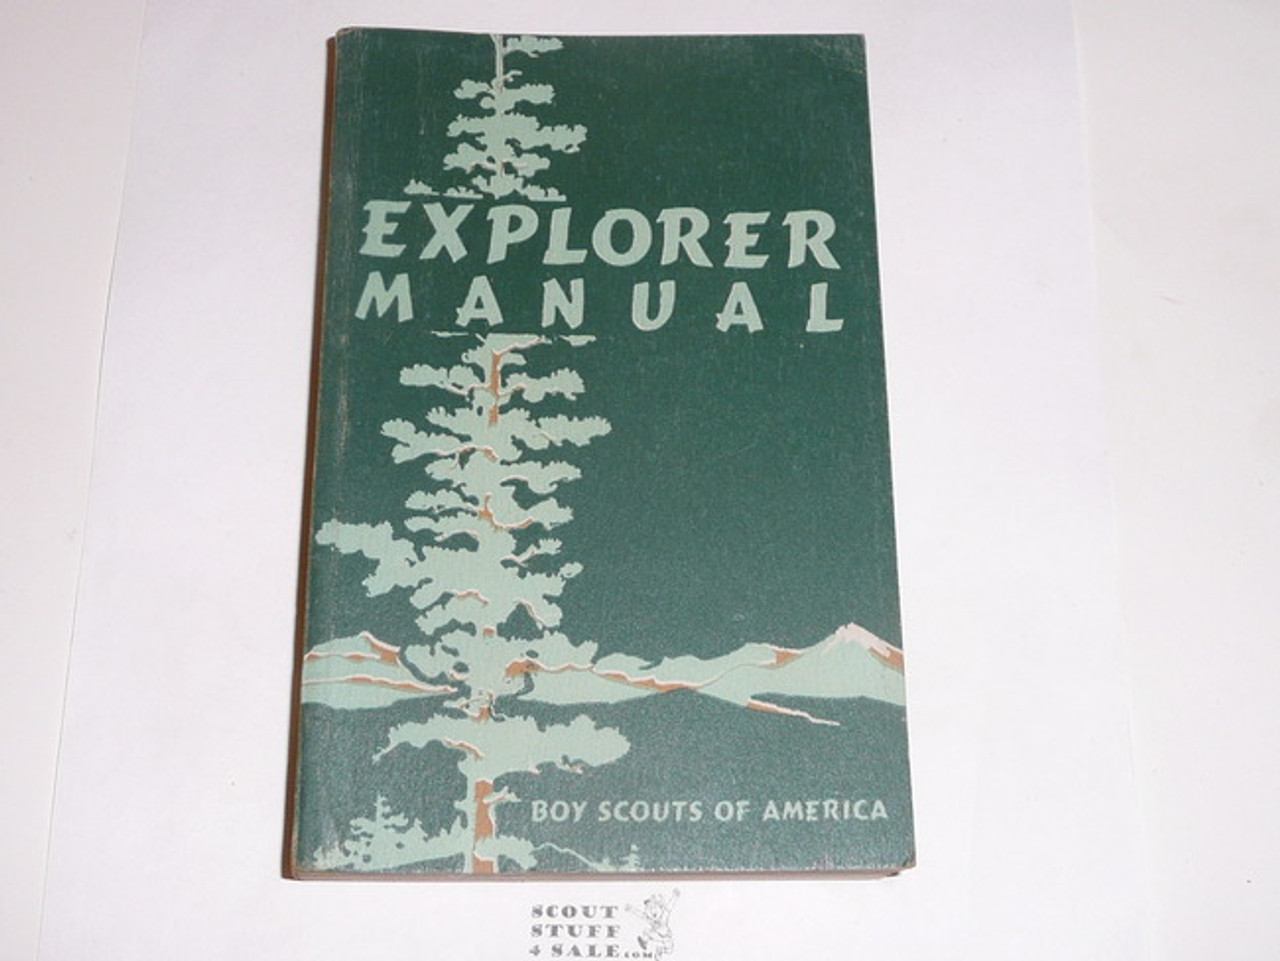 1952 Explorer Scout Manual, First Edition, 1952 Printing